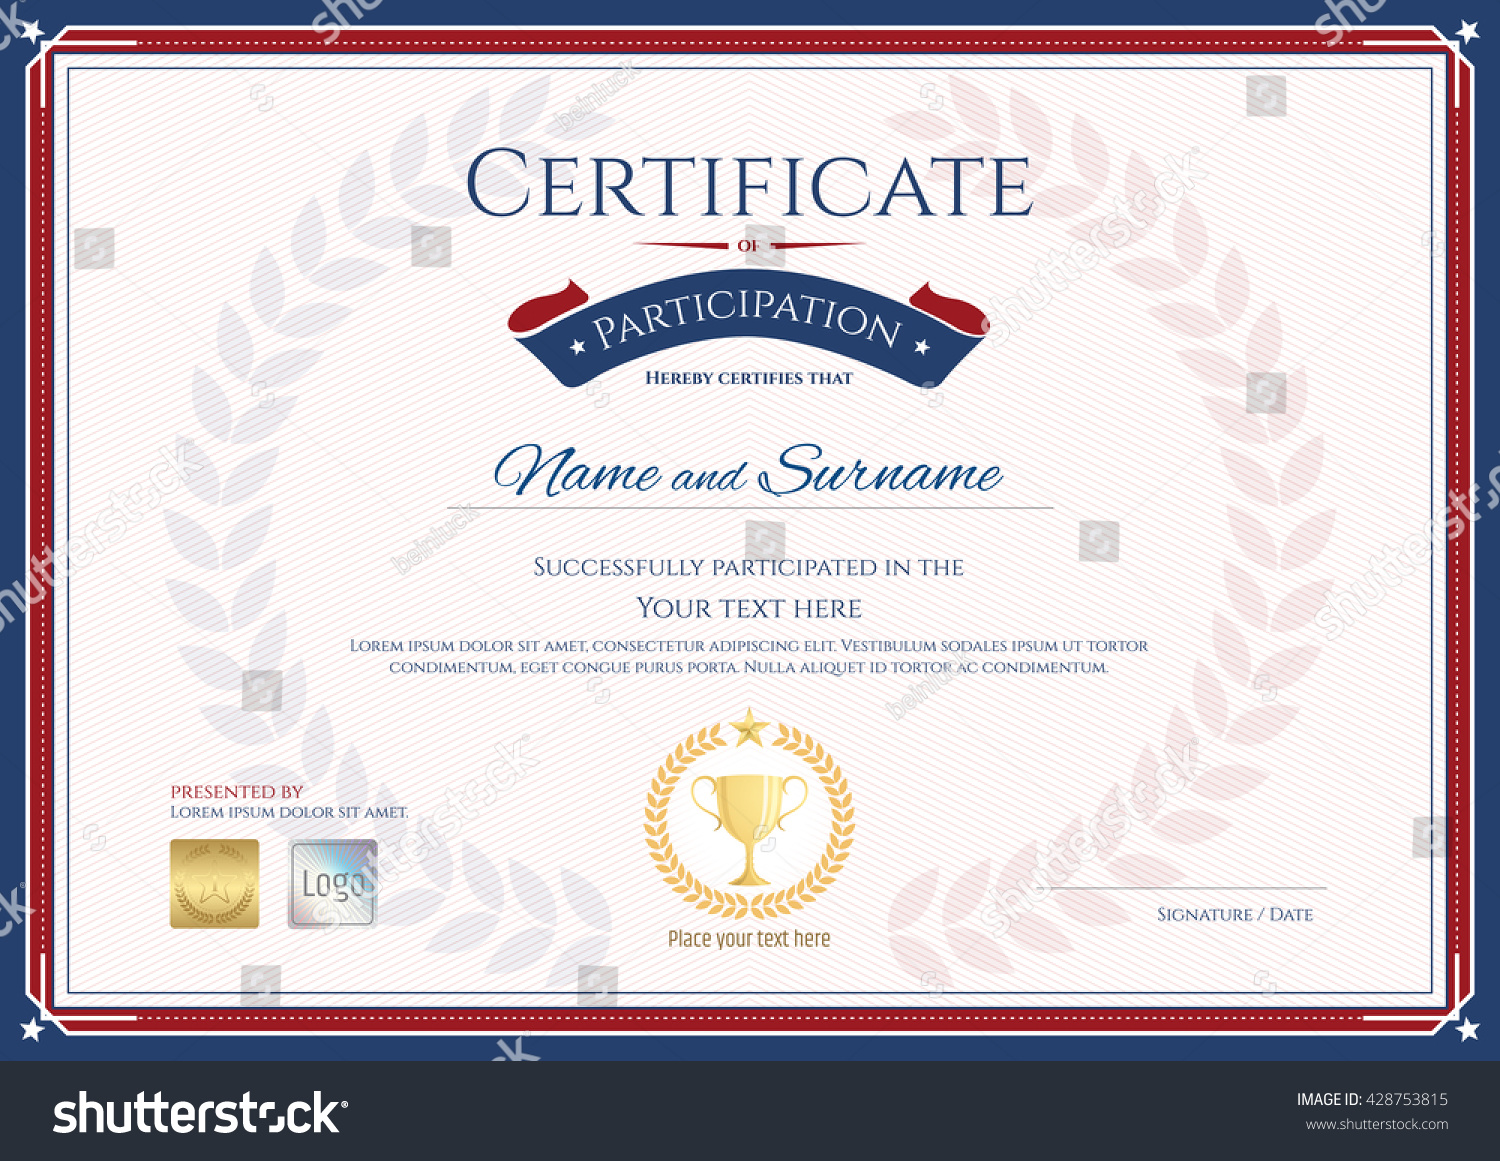 Certificate Participation Template Sport Theme Gold Vector – Certificate of Participation Template